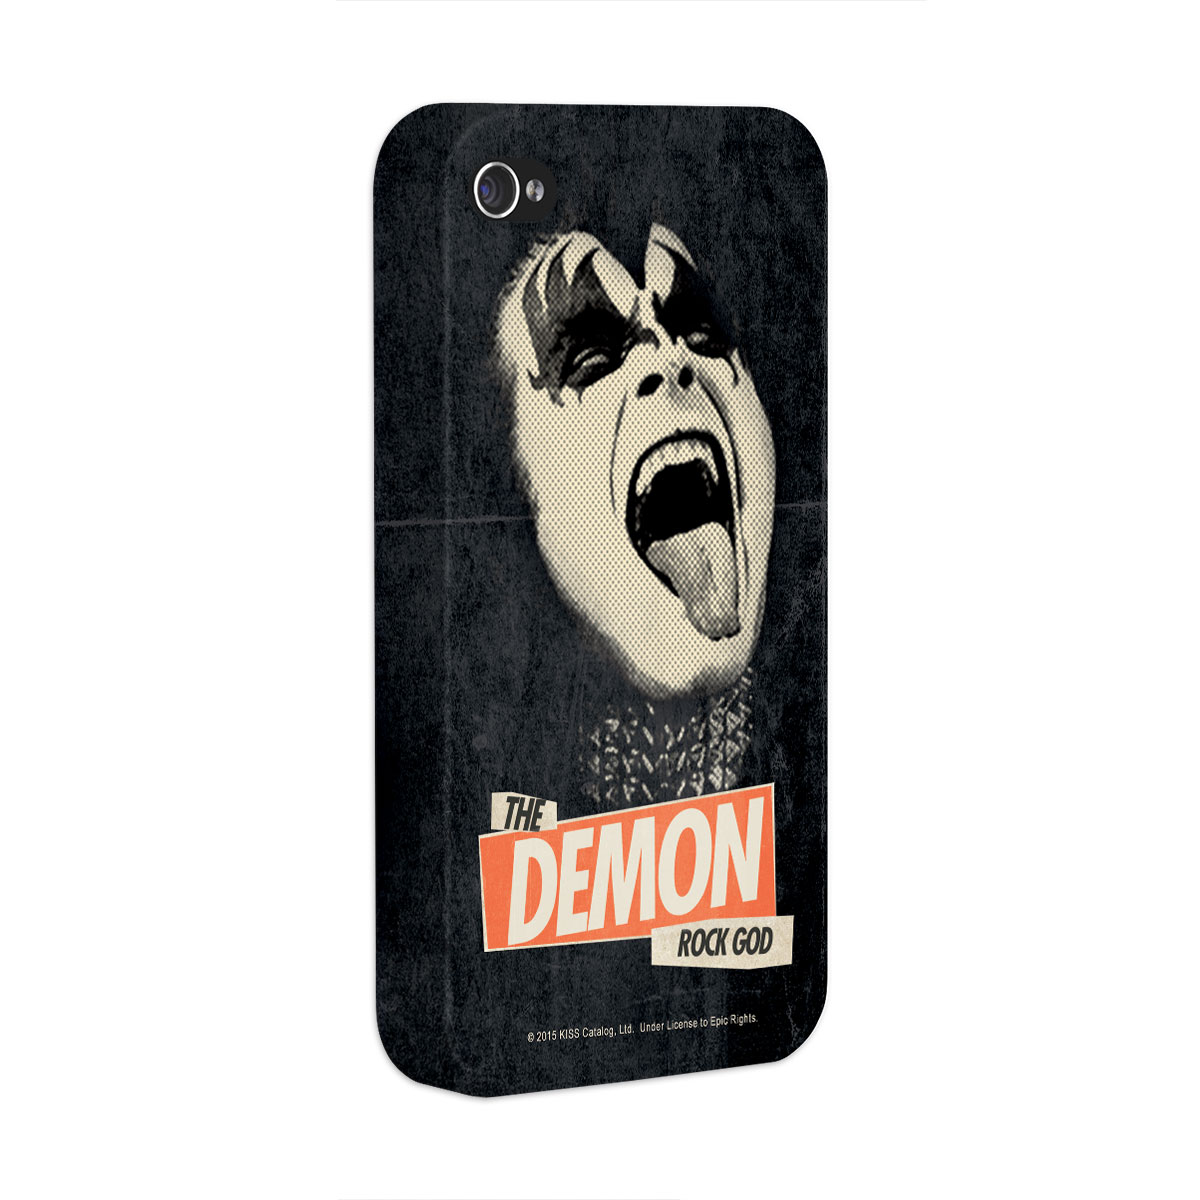 Capa para iPhone 4/4S Kiss Rock God